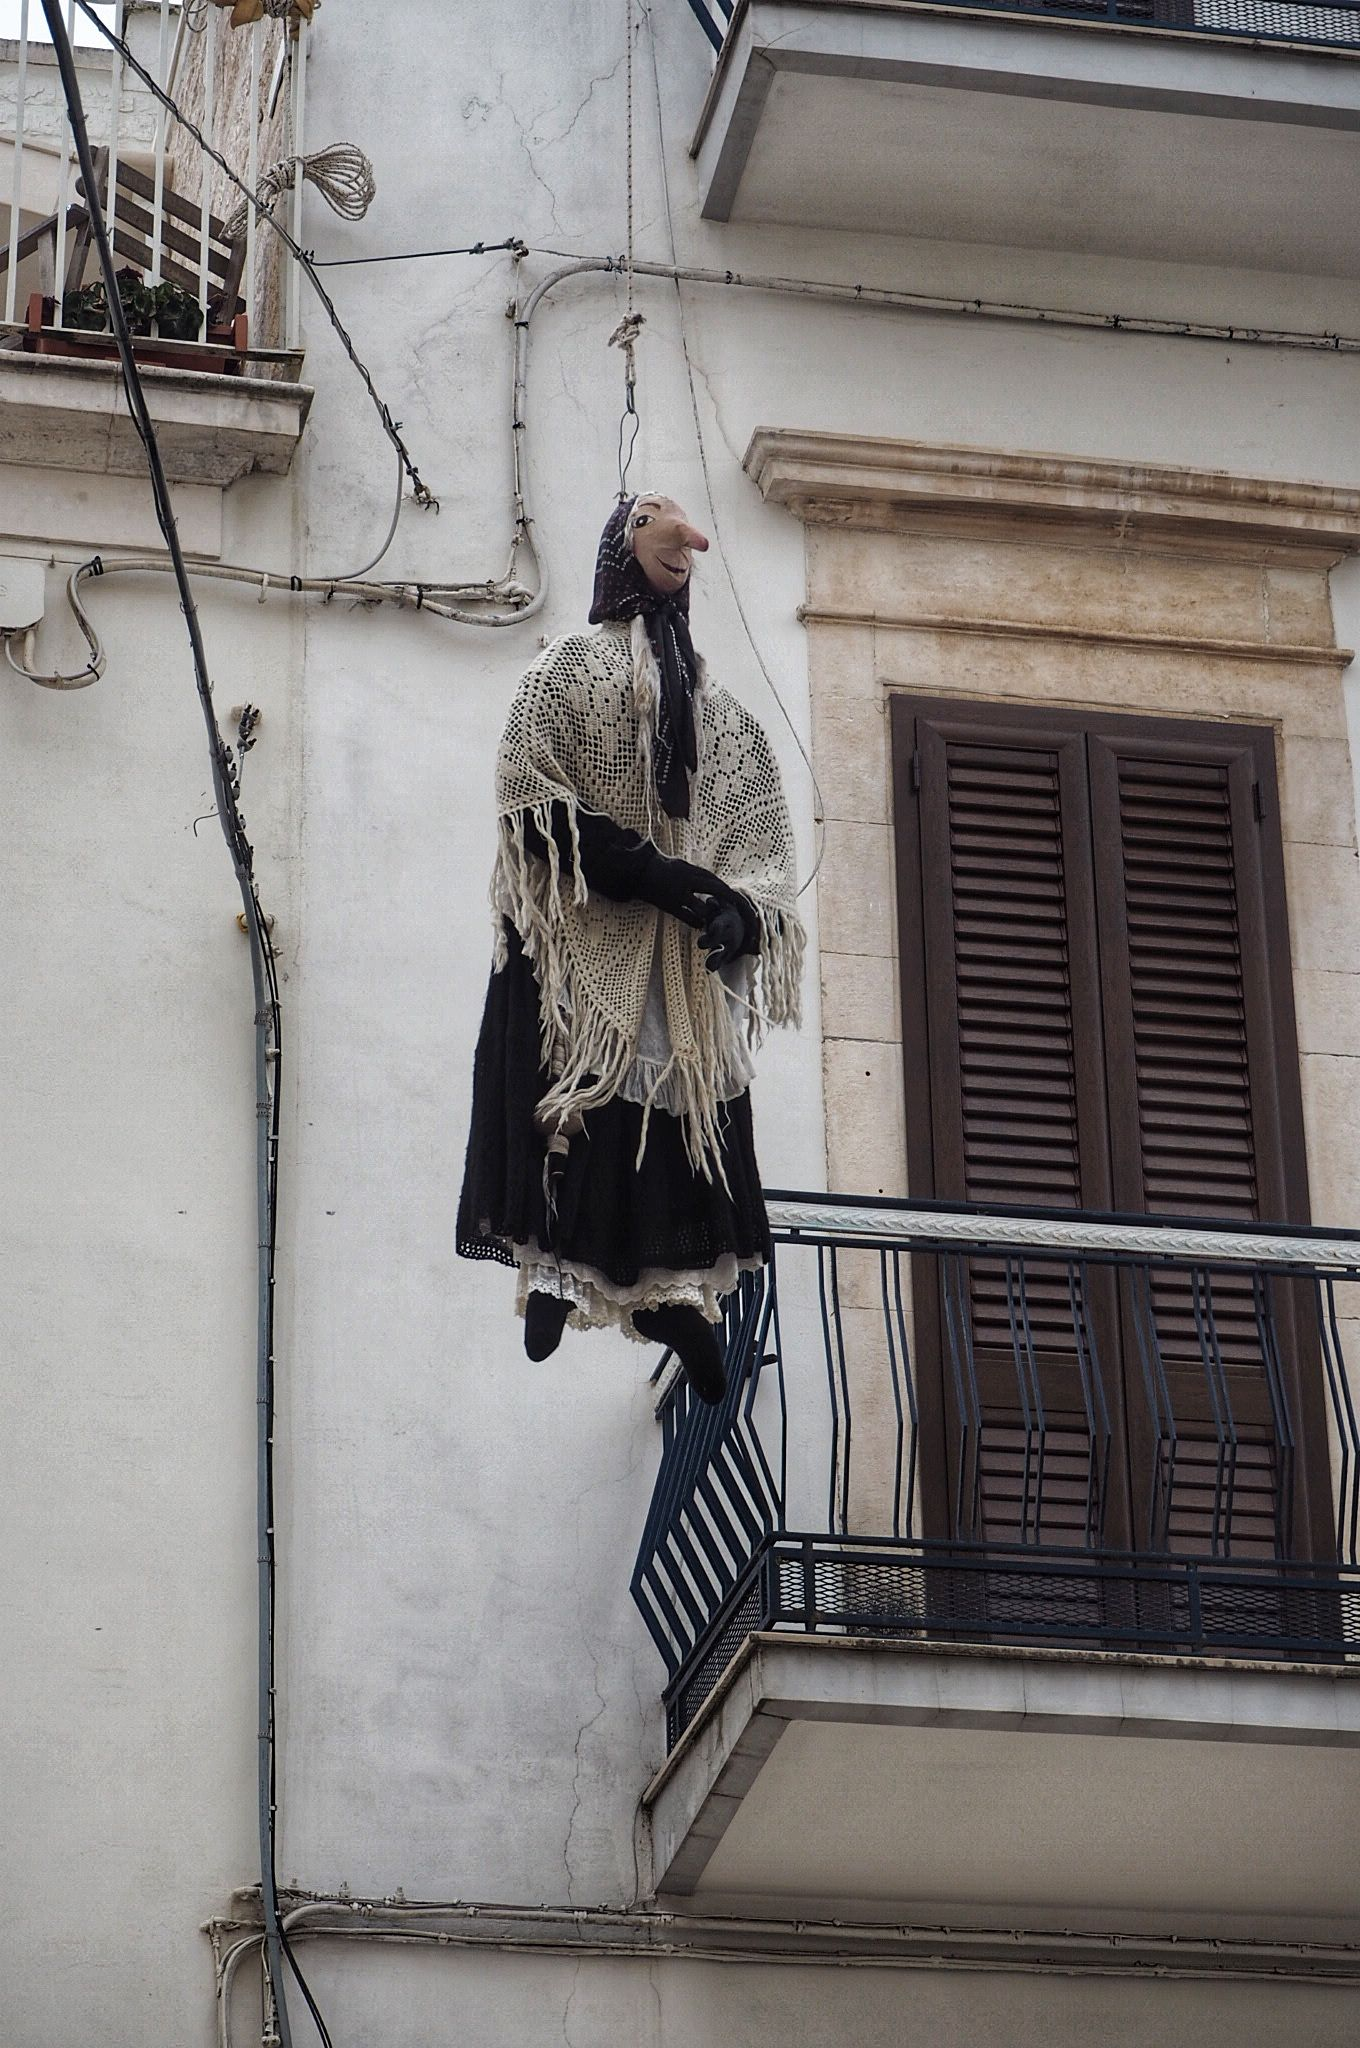 Locorotondo Quarandone lady puppet hanging from rope in town